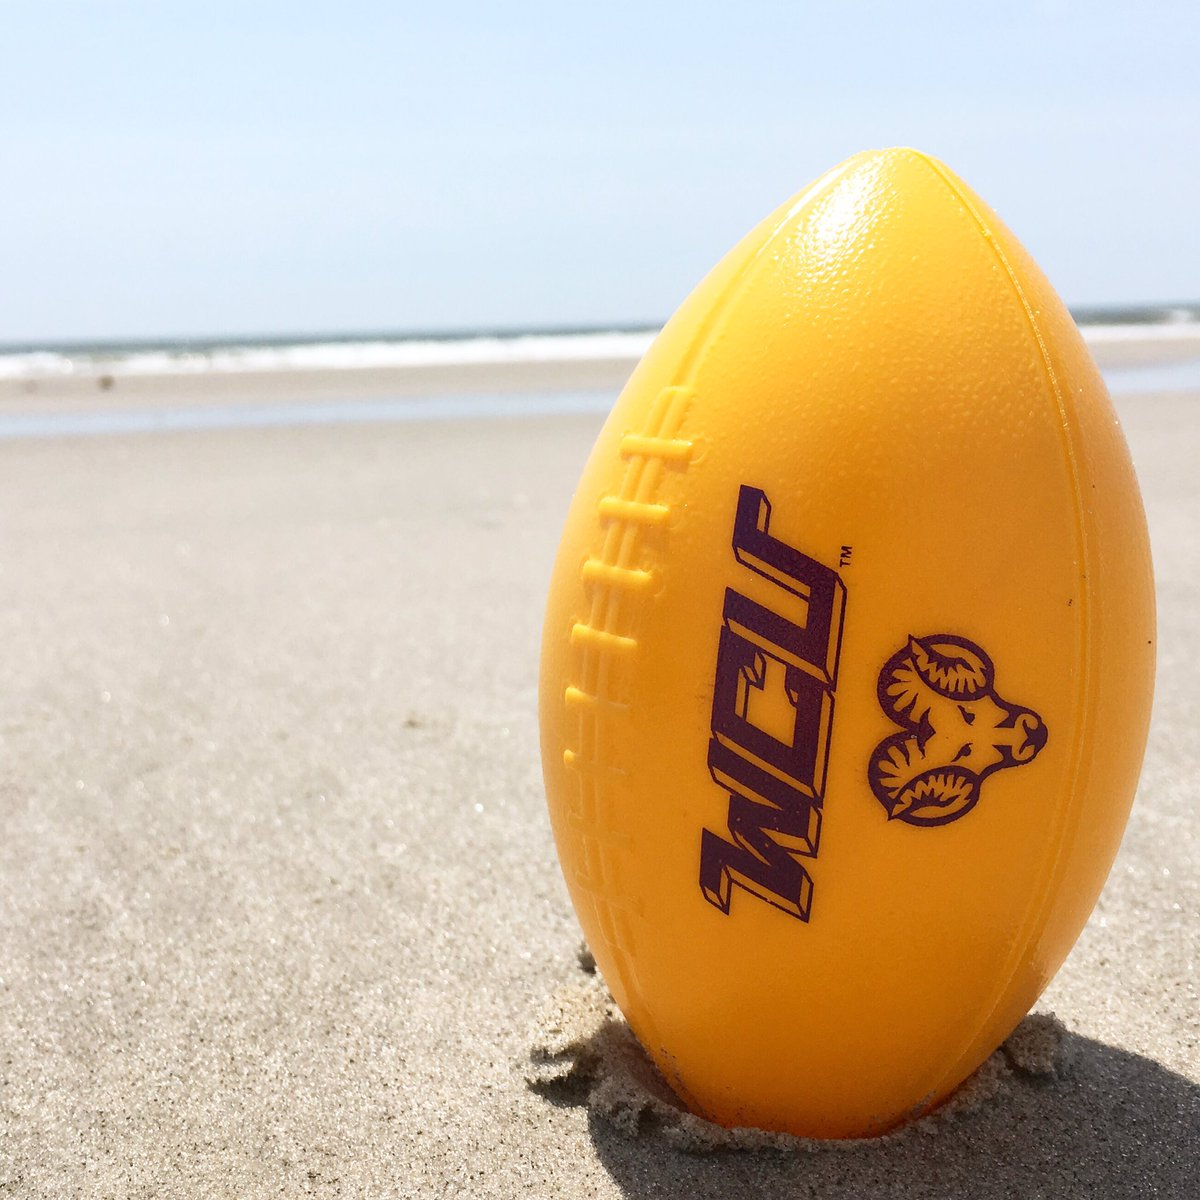 A few of our favorite things 🏖🏈🐏 #RamsUP #SummerRam